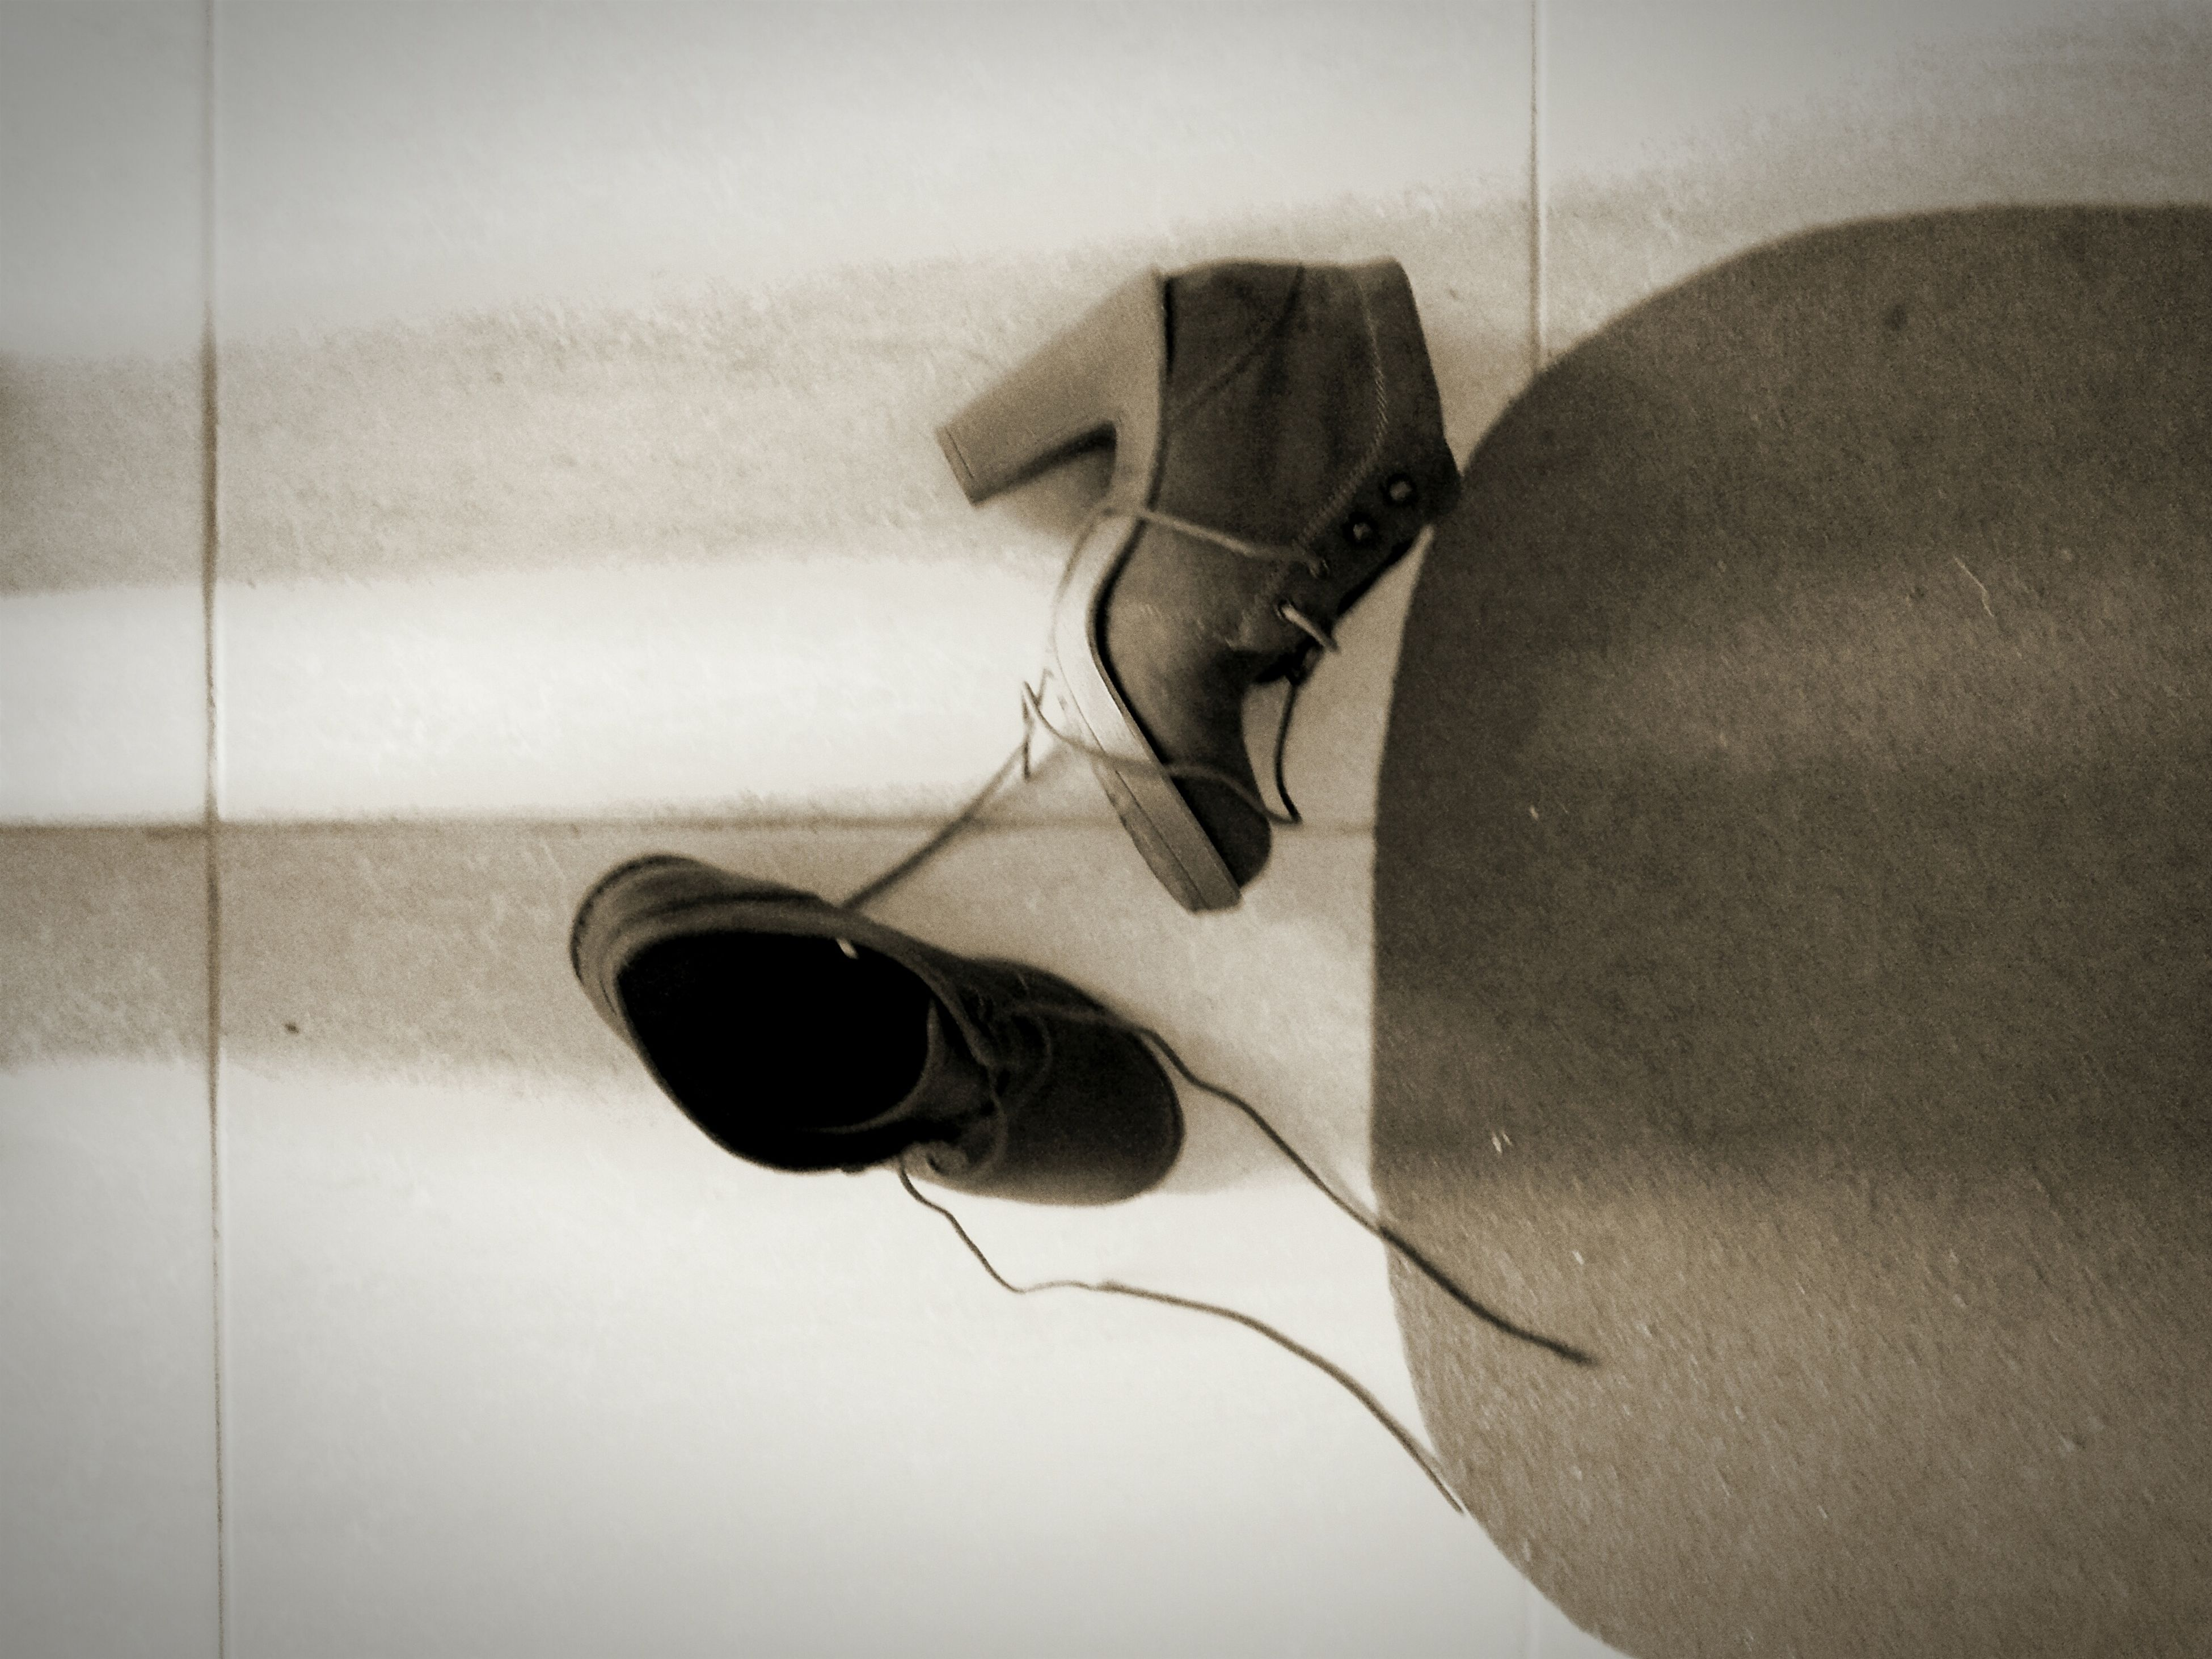 indoors, still life, wall - building feature, shoe, close-up, high angle view, man made object, single object, pair, shadow, hanging, equipment, no people, technology, simplicity, cable, electricity, footwear, wall, flooring